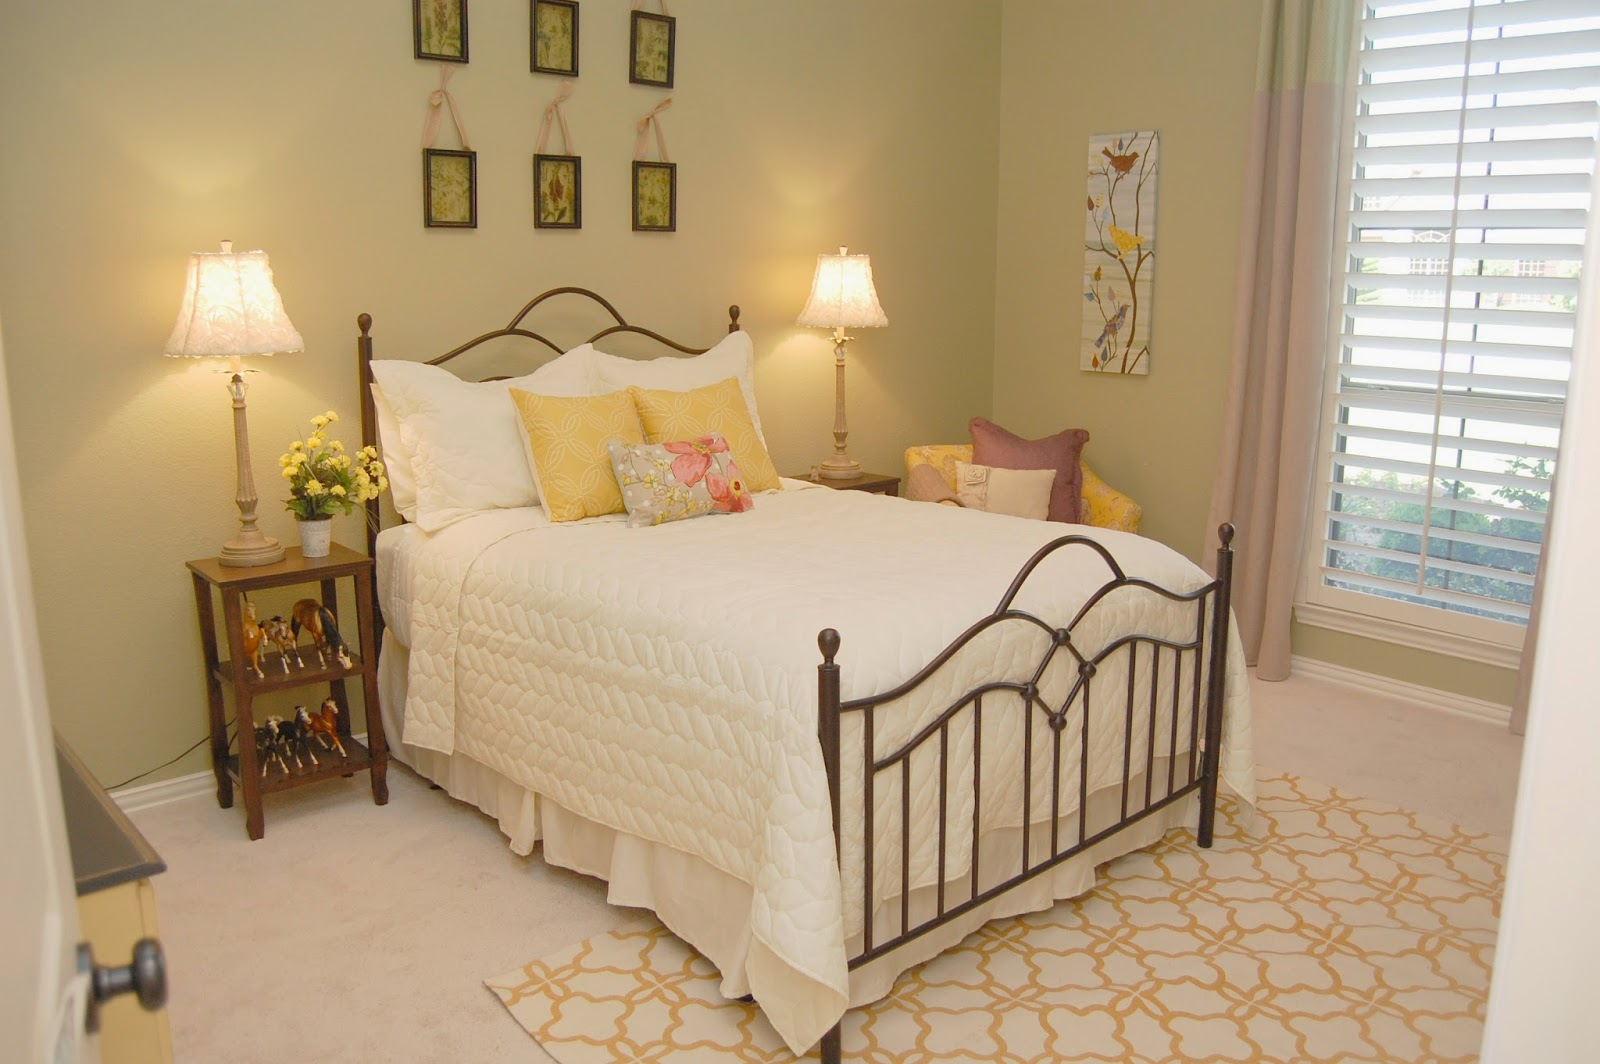 Girl S Nature Inspired Bedroom: Style With Wisdom: Girly Nature Inspired Bedroom